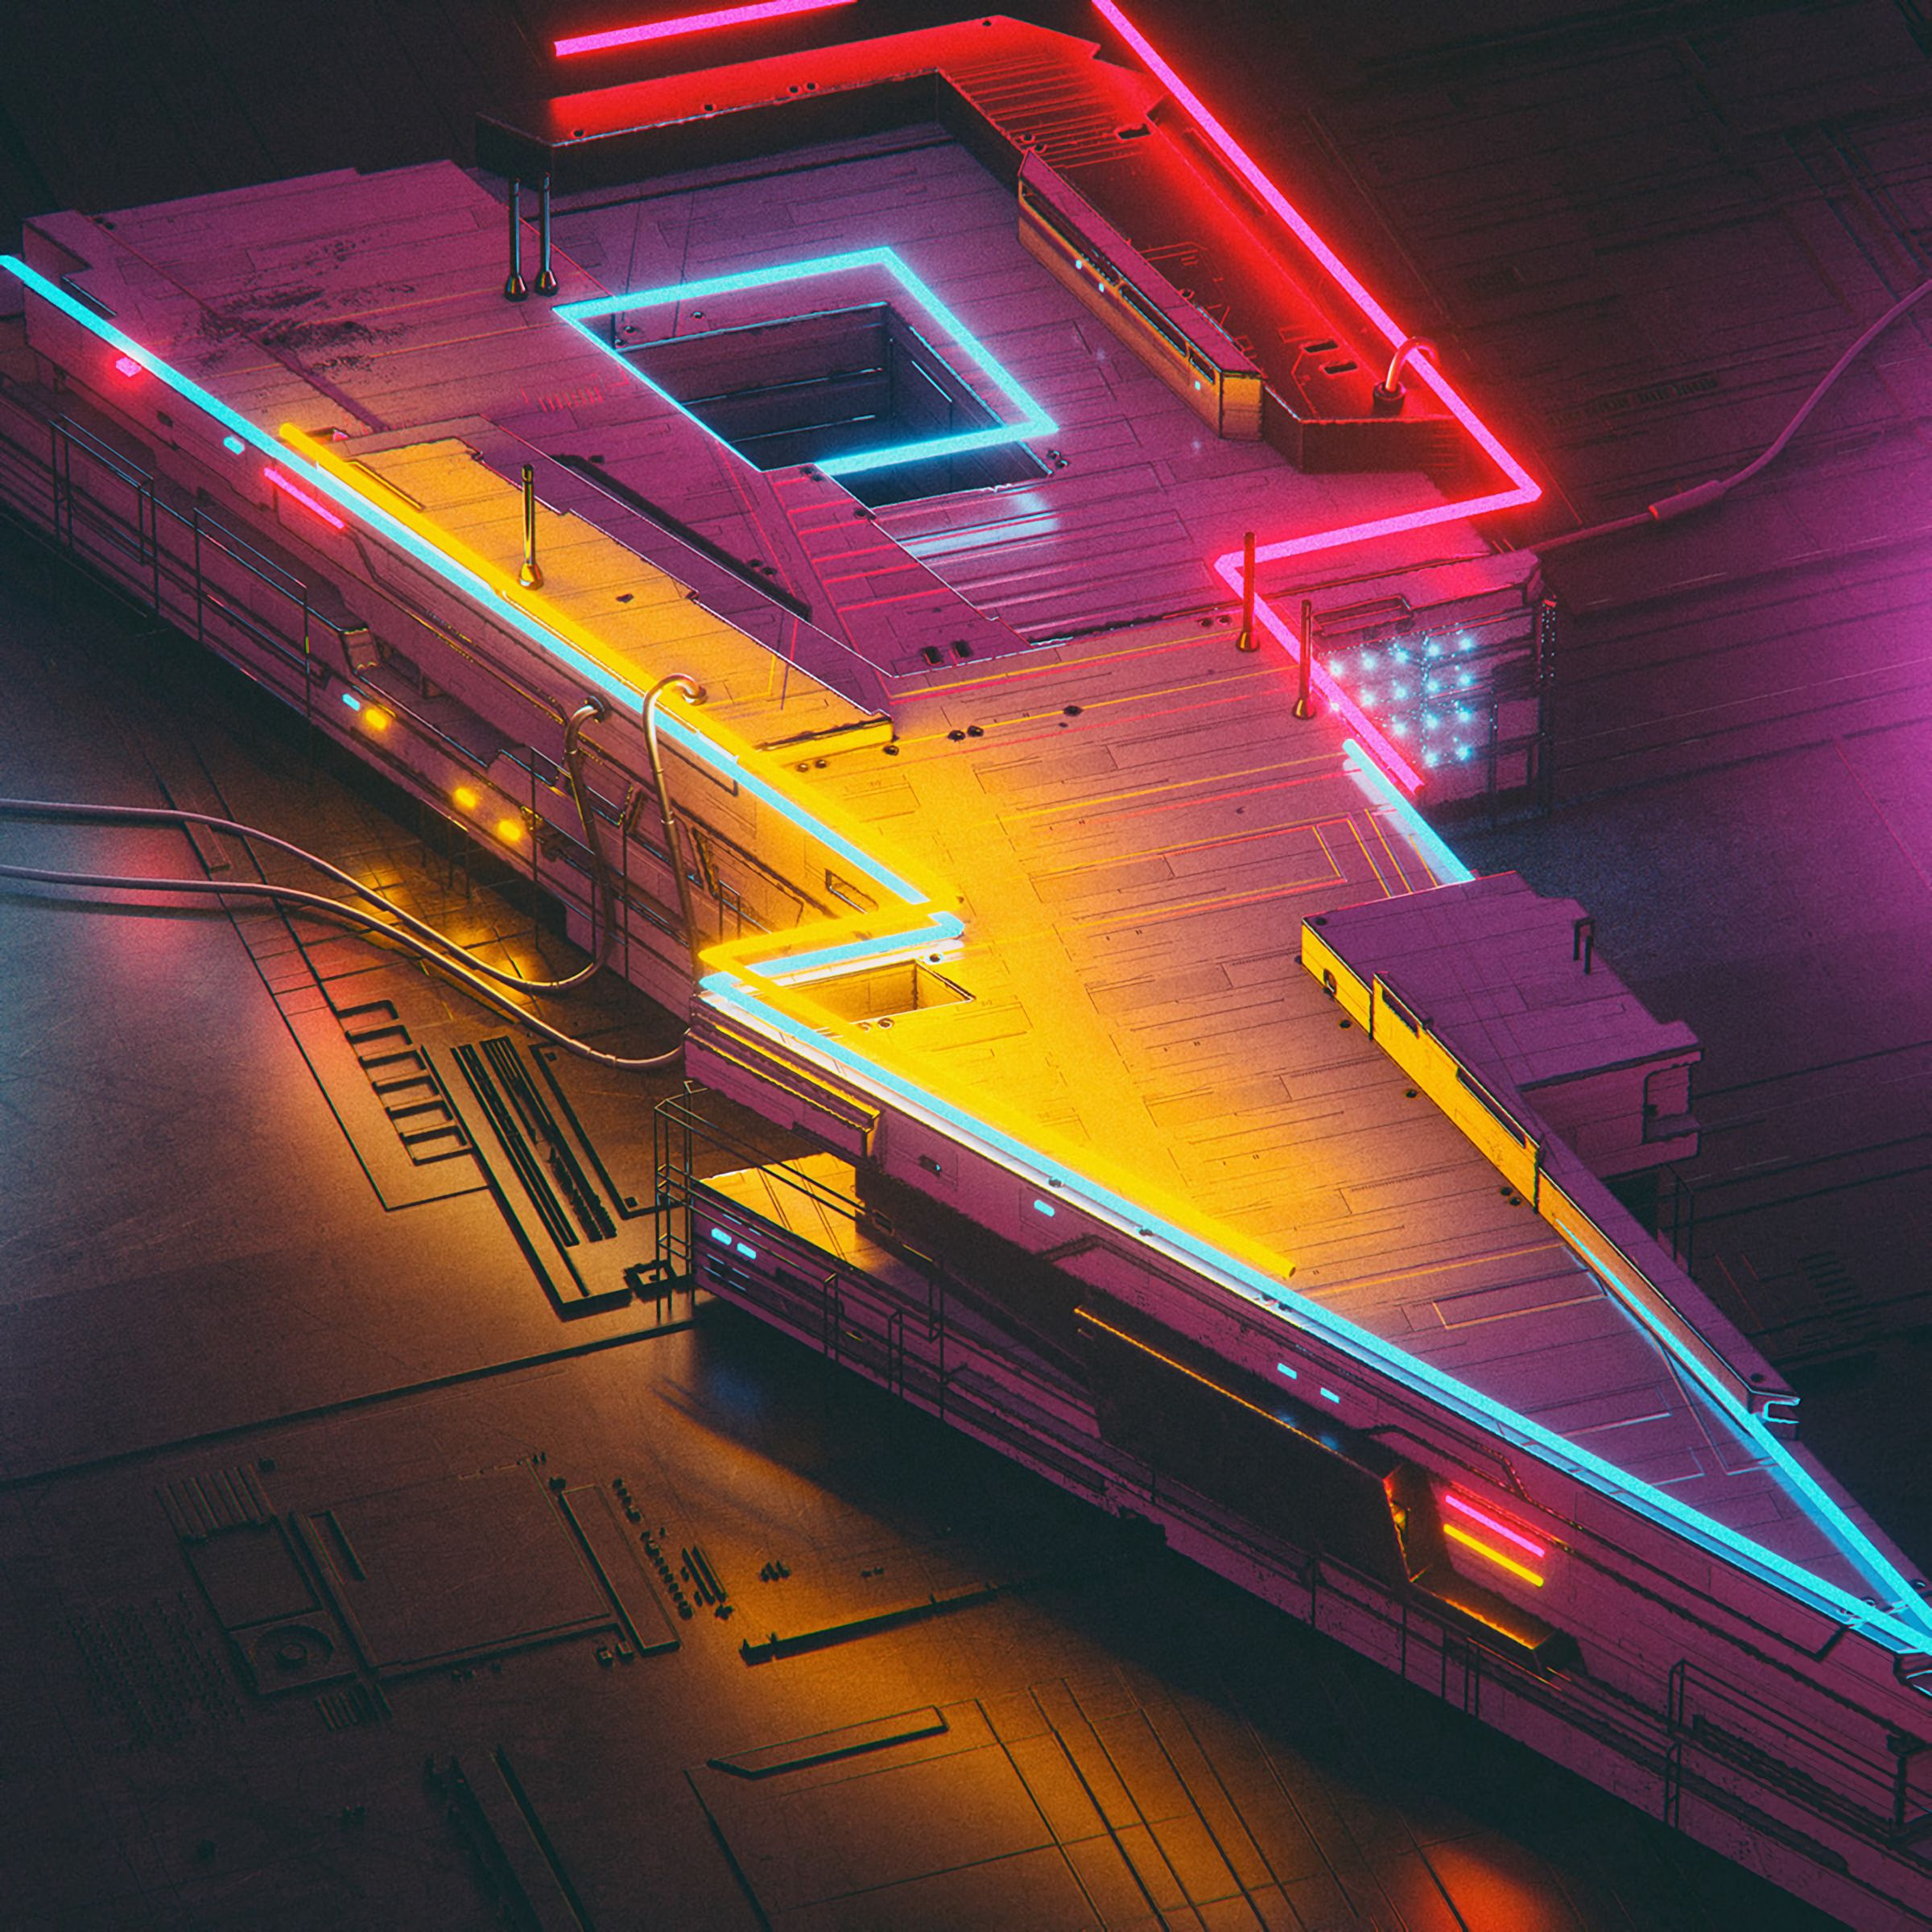 118638 download wallpaper Neon, Lightning, Art, Futurism screensavers and pictures for free